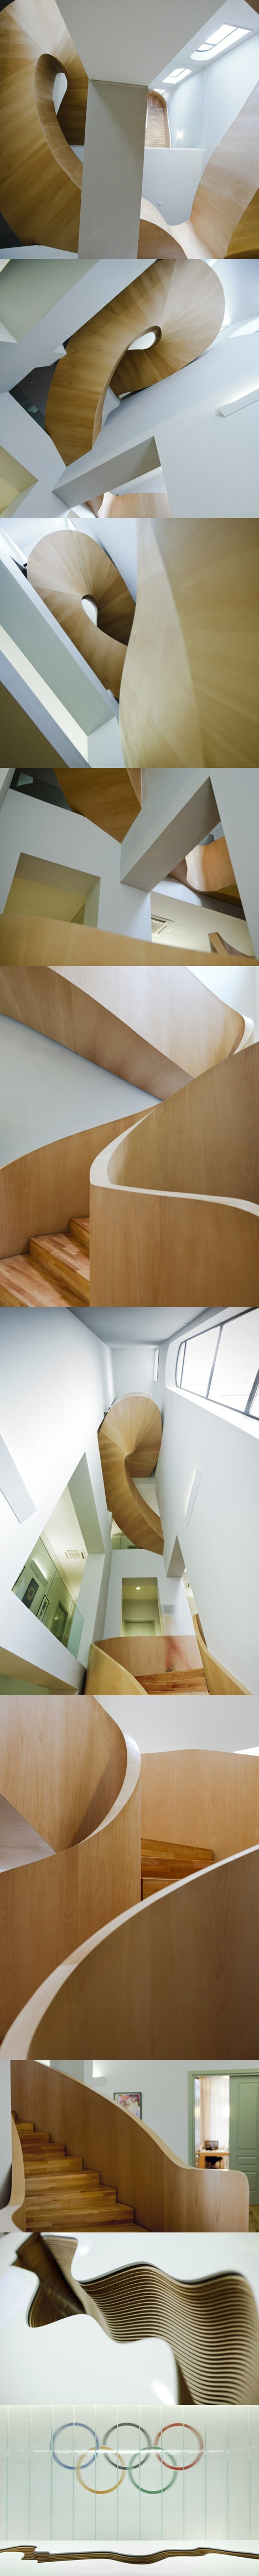 Stair Porn: National Olympic Committee House   by Architects of Invention